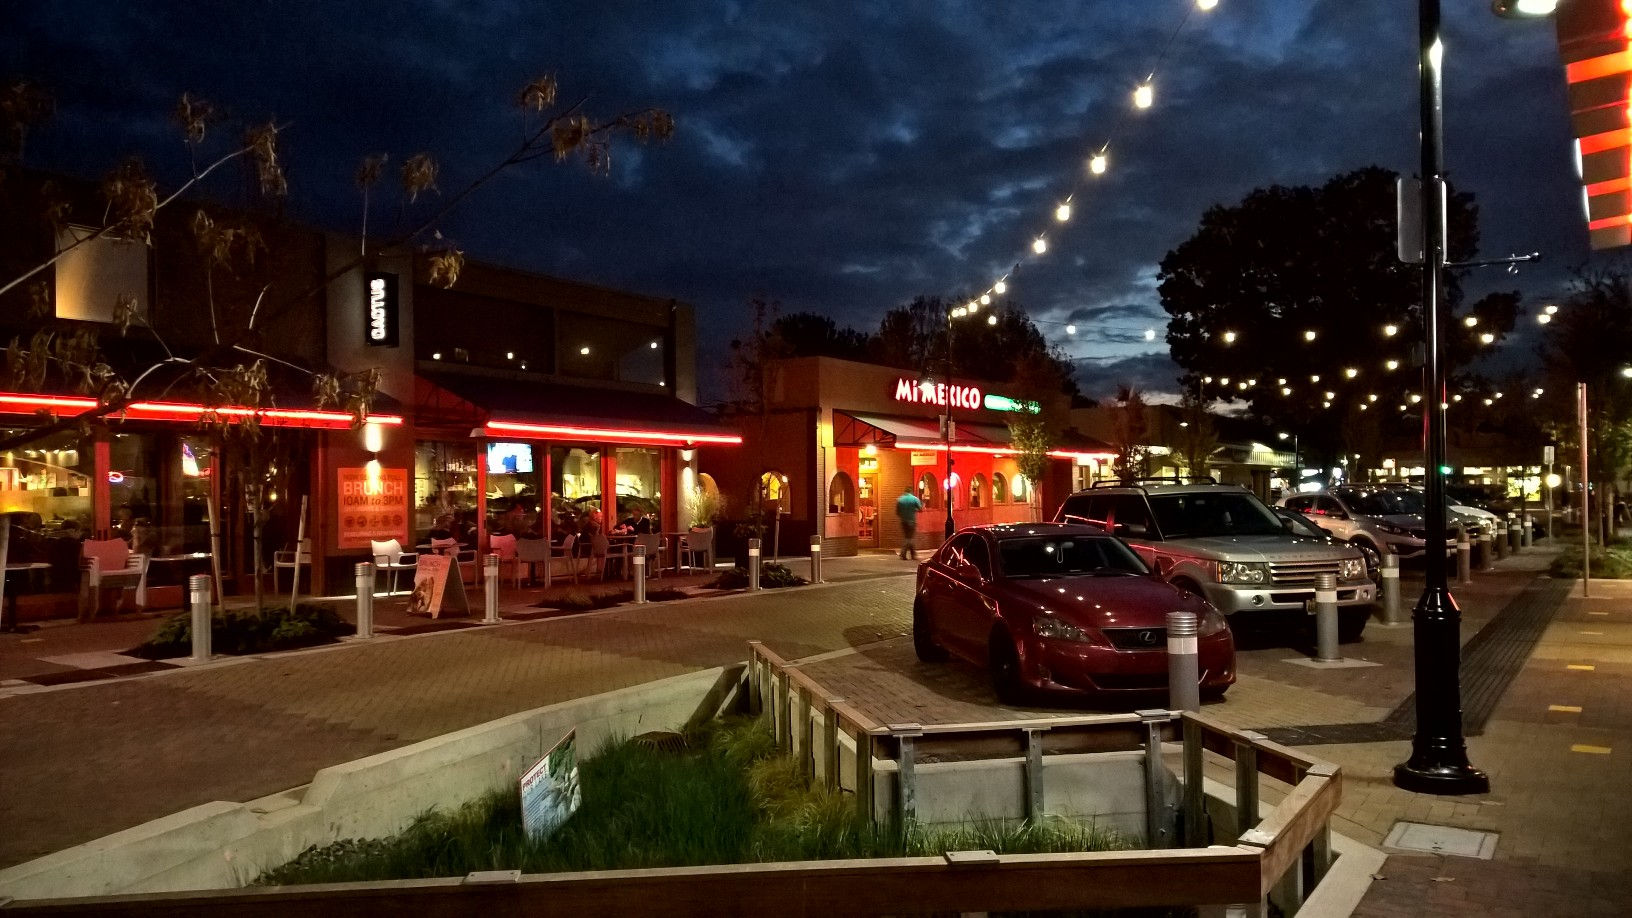 A Vibrant place for kirkland to gather